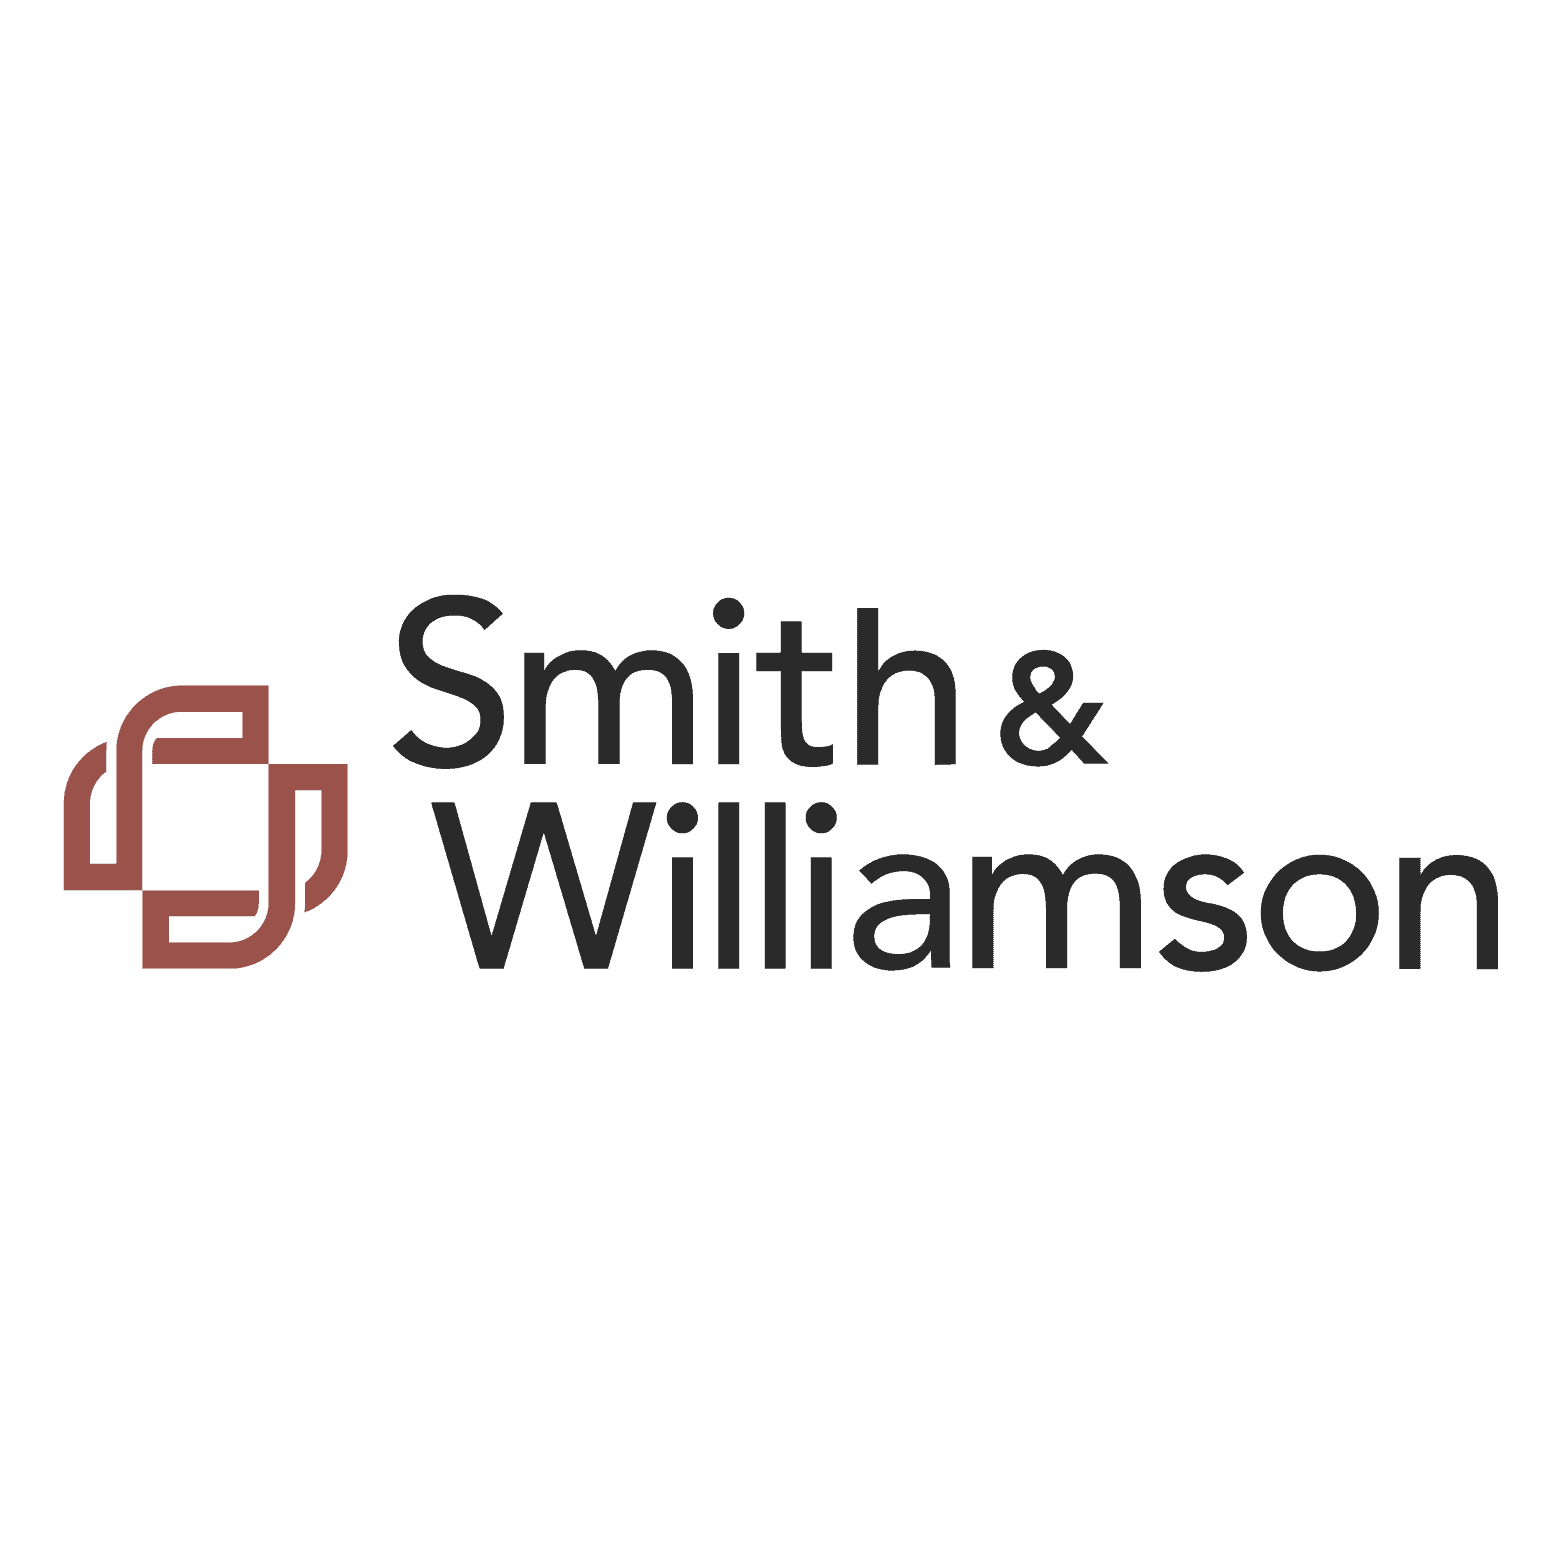 SMITH-_-WILLIAMSON-color